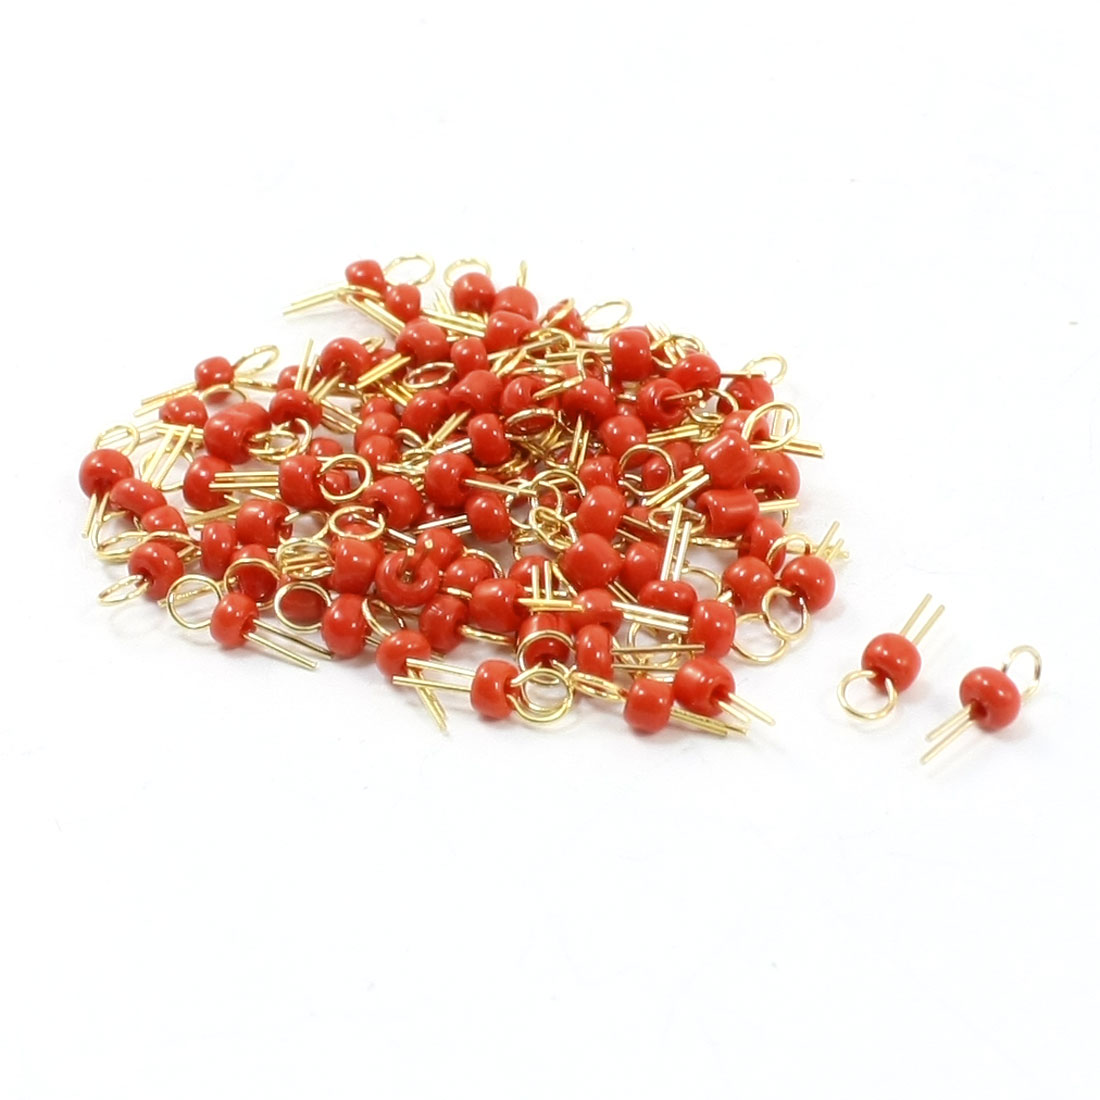 100 Pcs Red Ceramic Bead Copper PCB Test Endpoint Pin Terminal